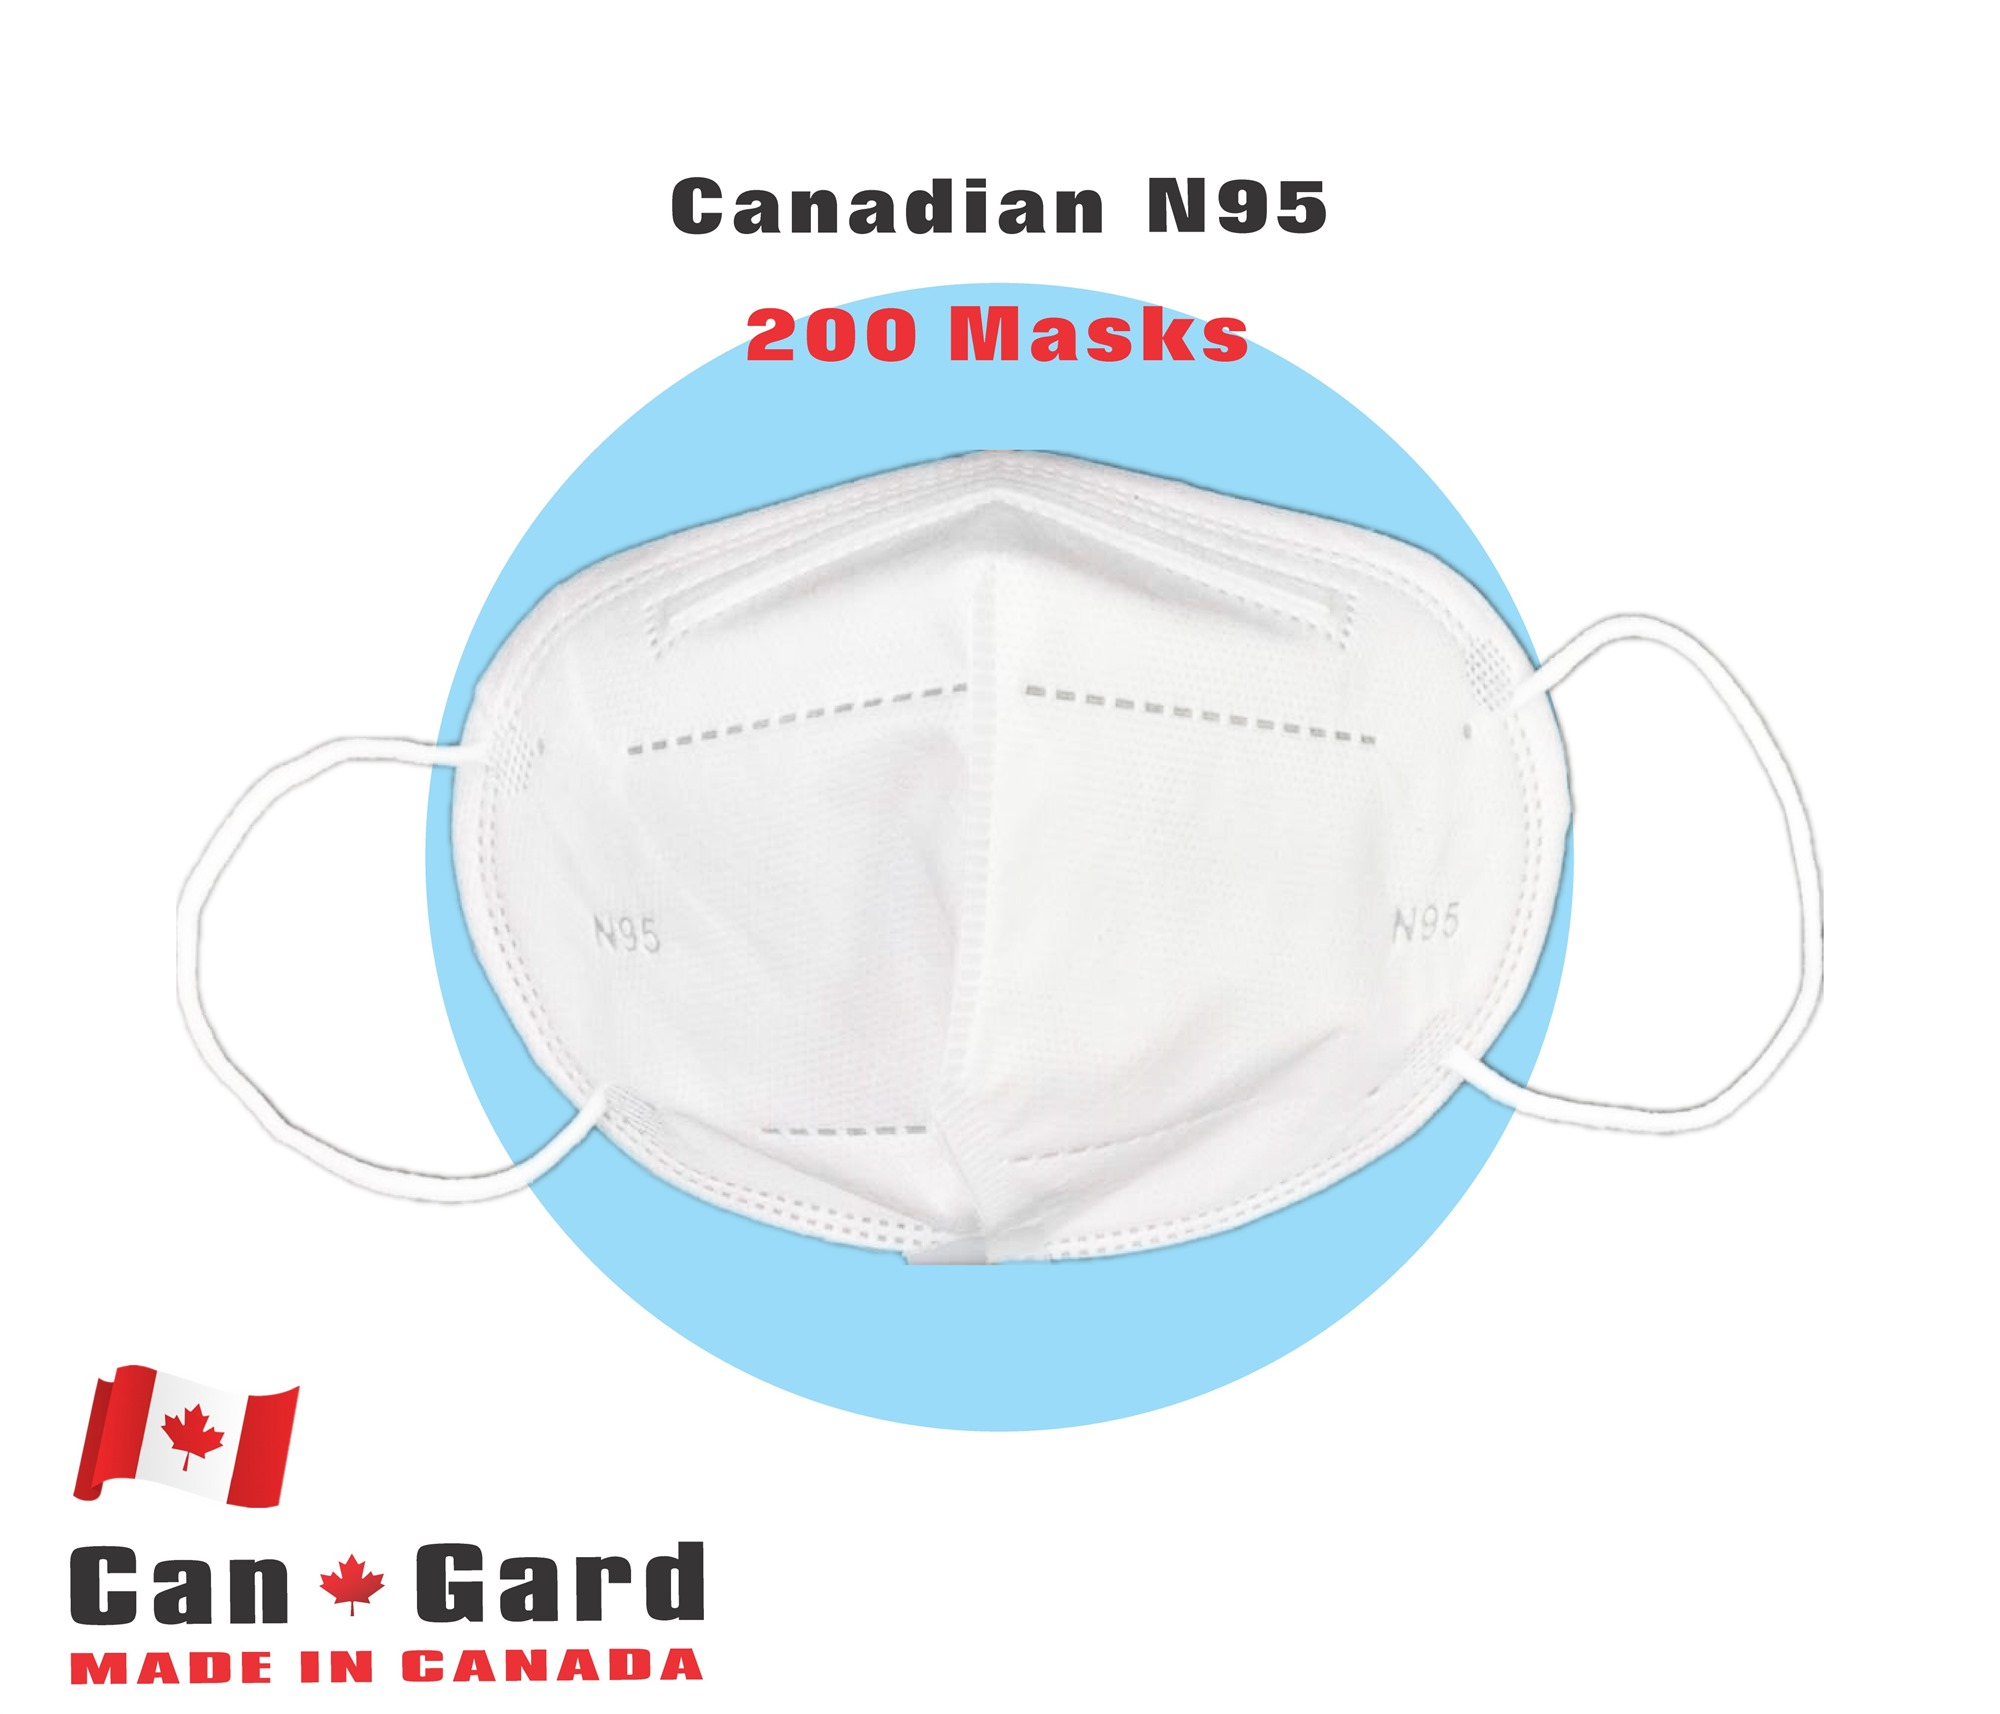 CanGard Care - Canadian N95 200 Masks